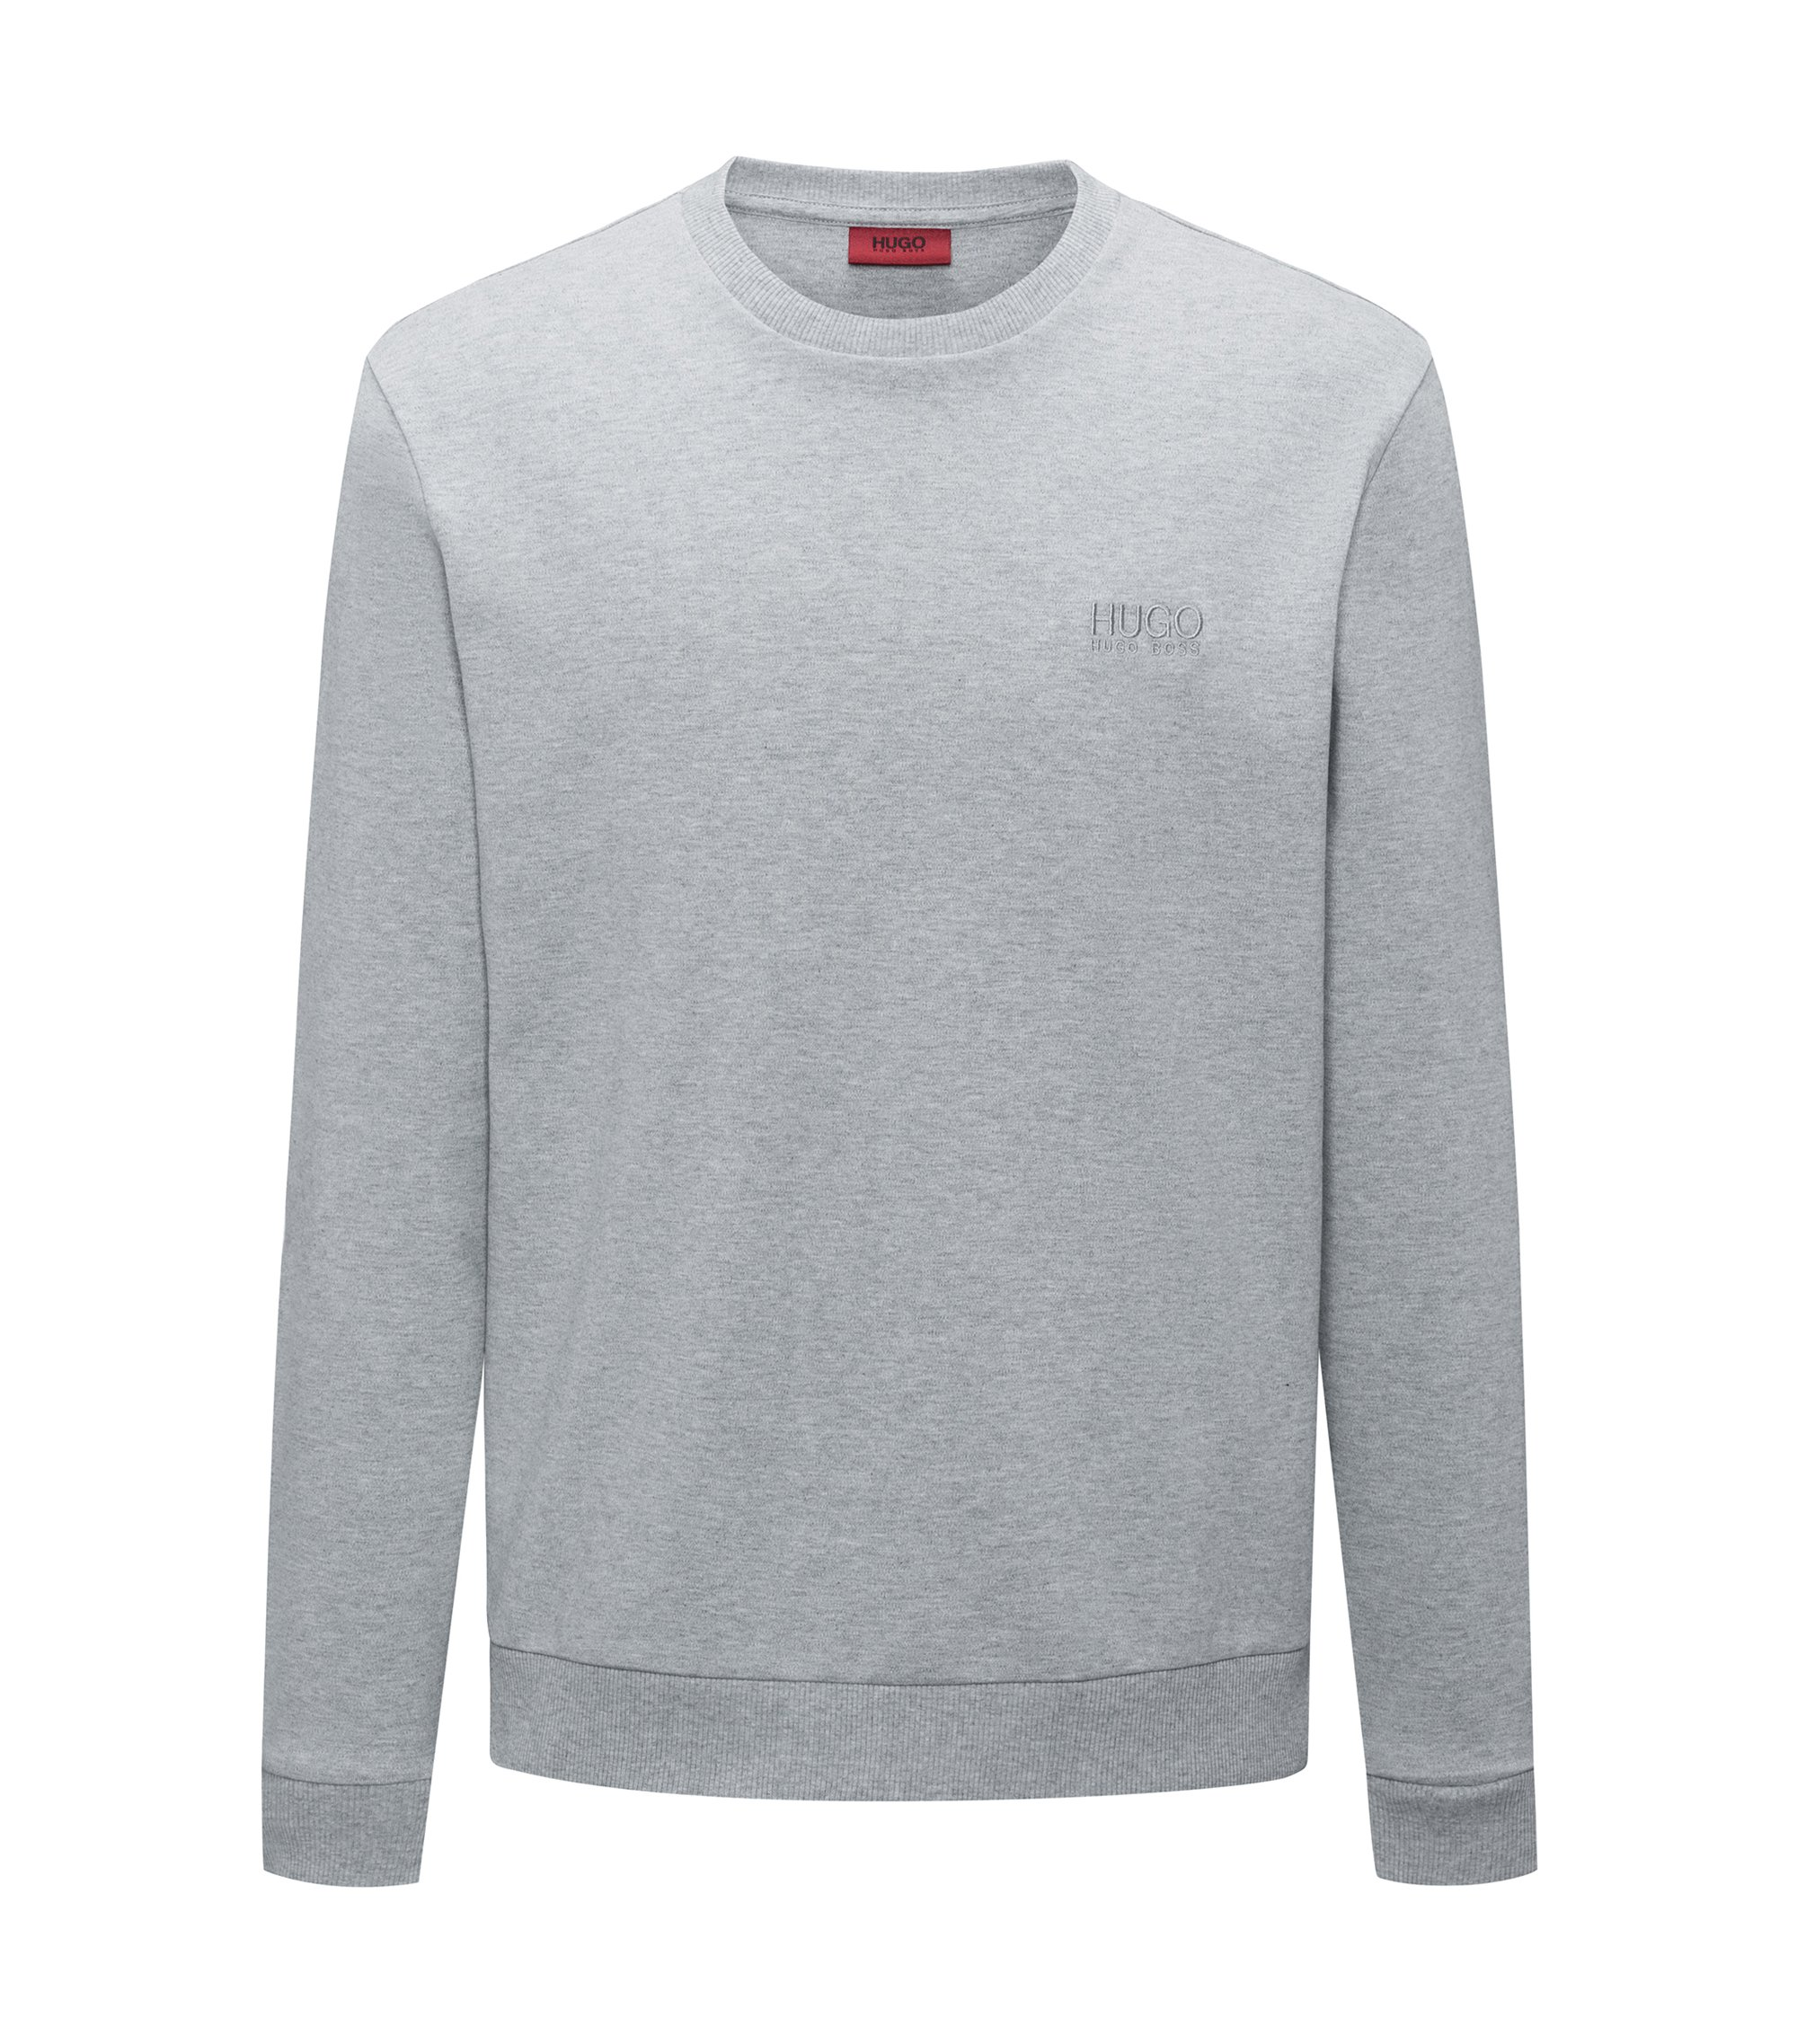 Sweat logo en coton interlock, Gris